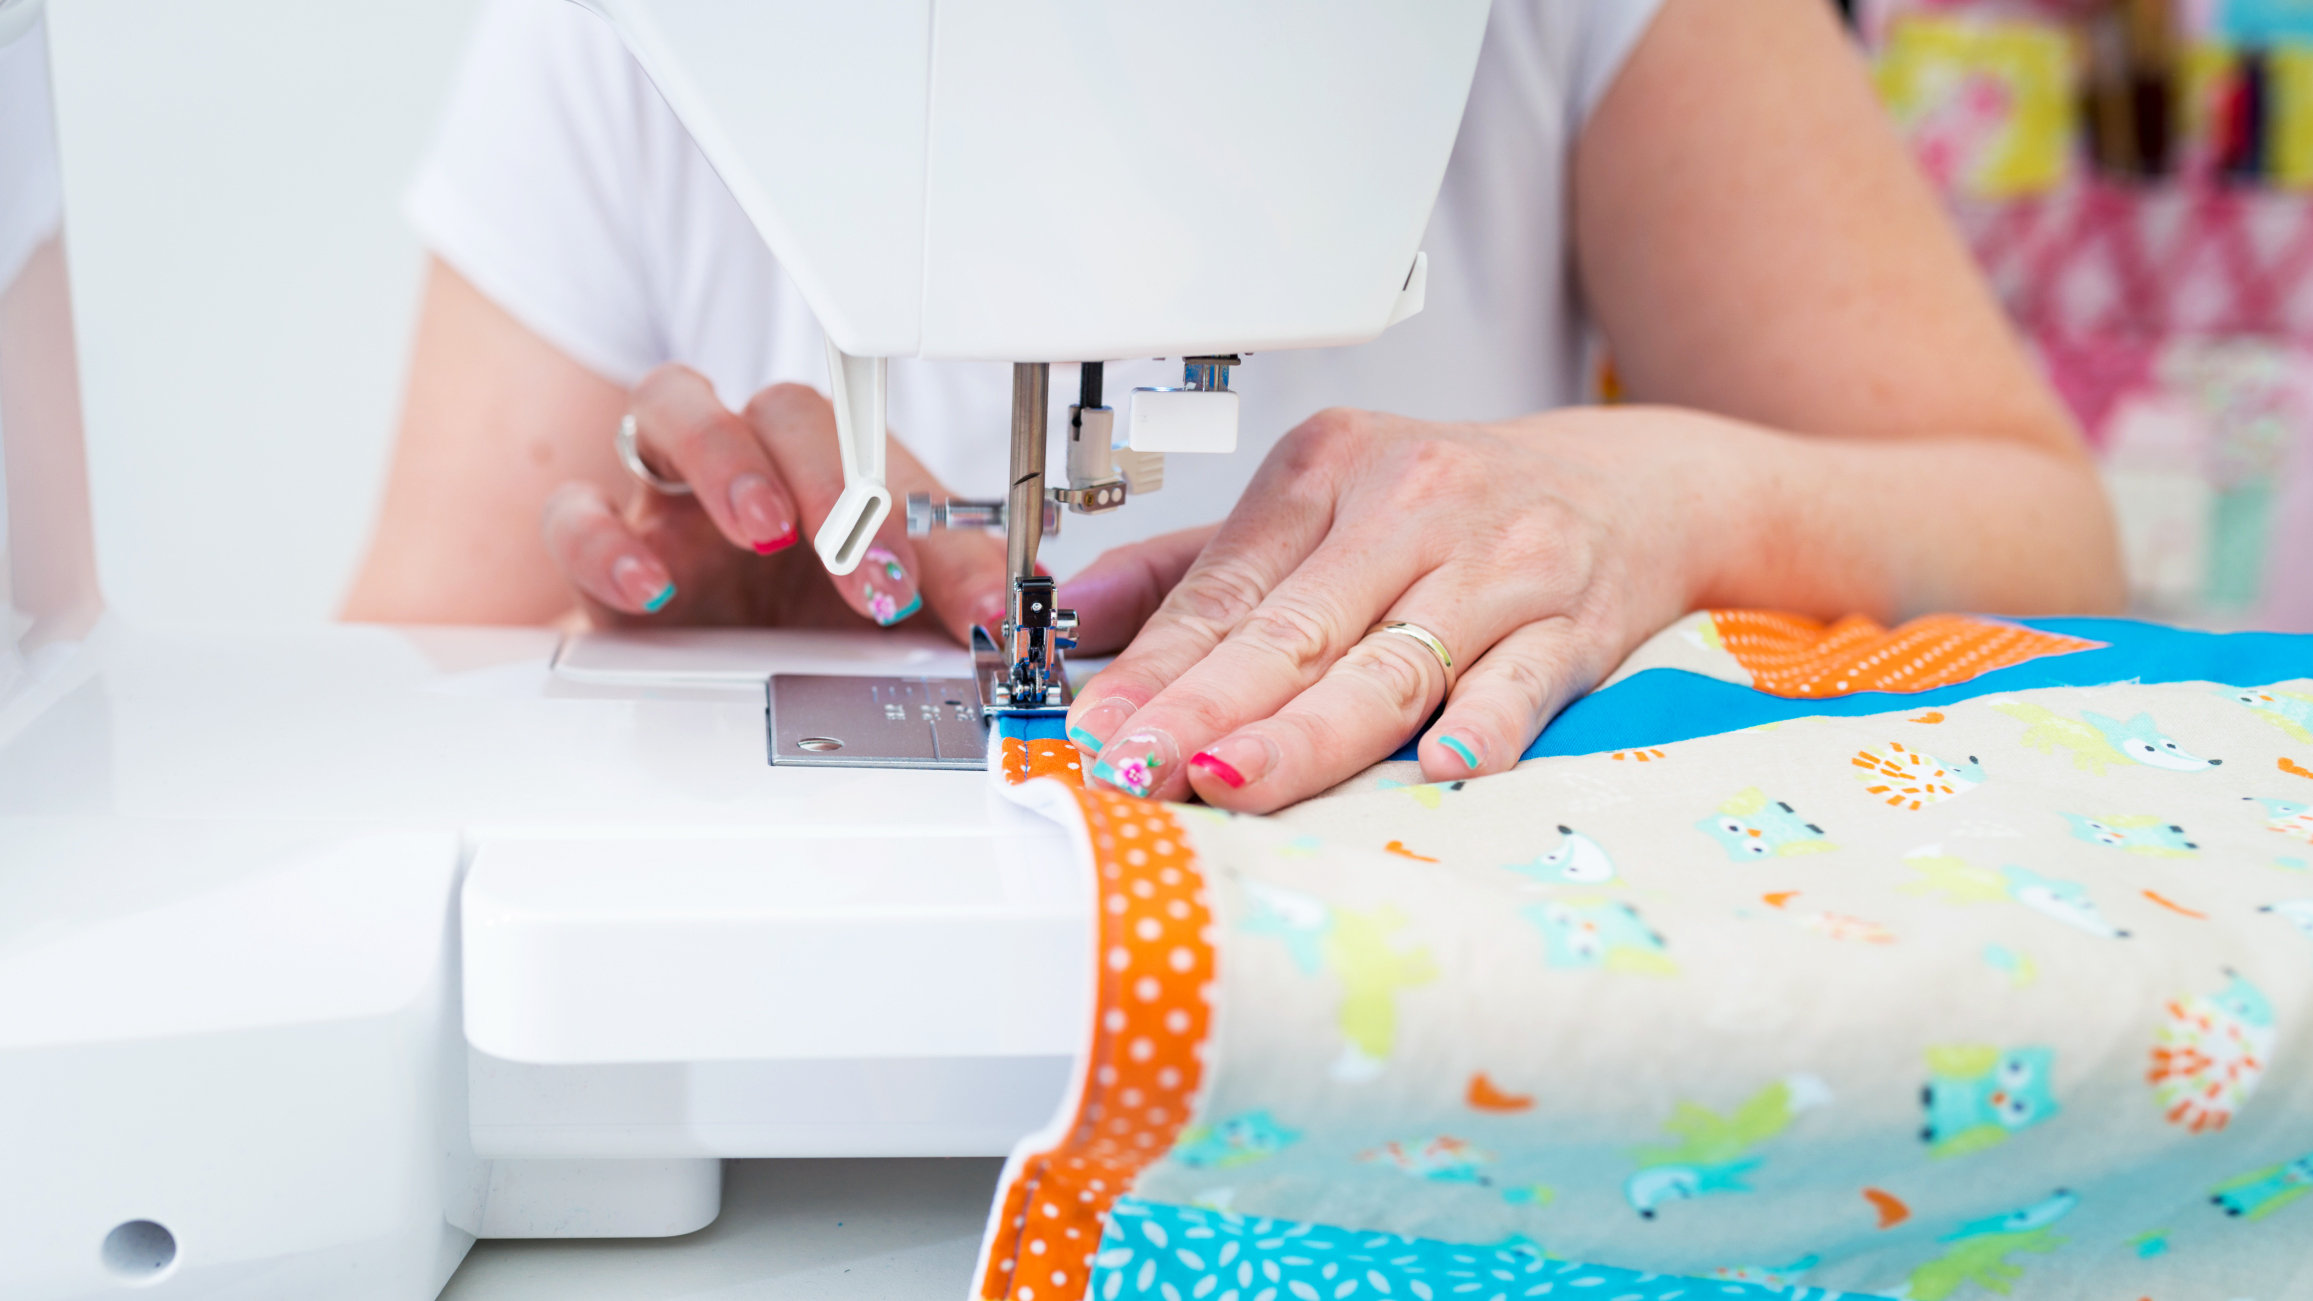 Tips For Sewing Unmentionables